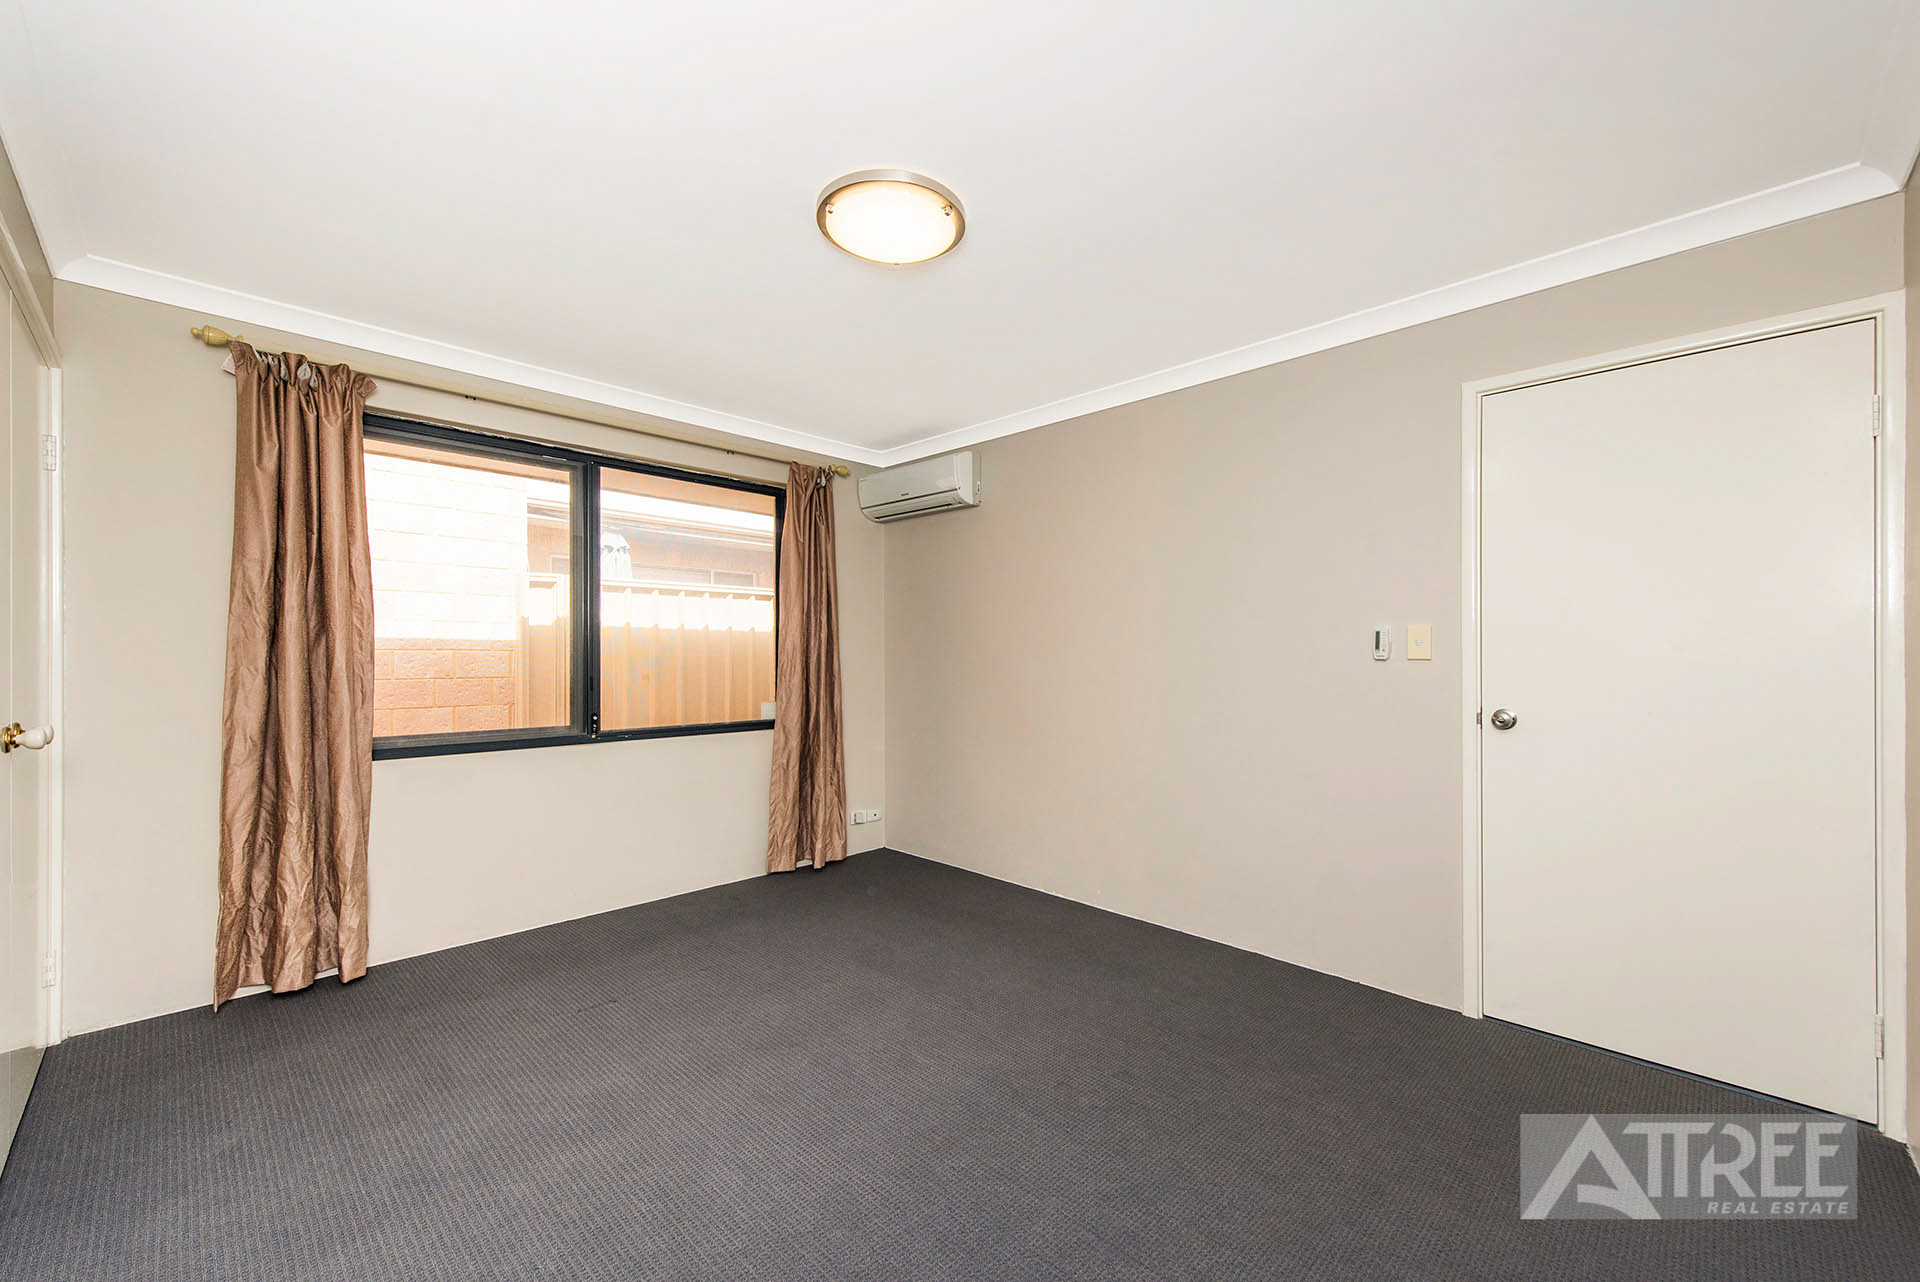 Property for sale in SOUTHERN RIVER, 47 Dalyup Road : Attree Real Estate